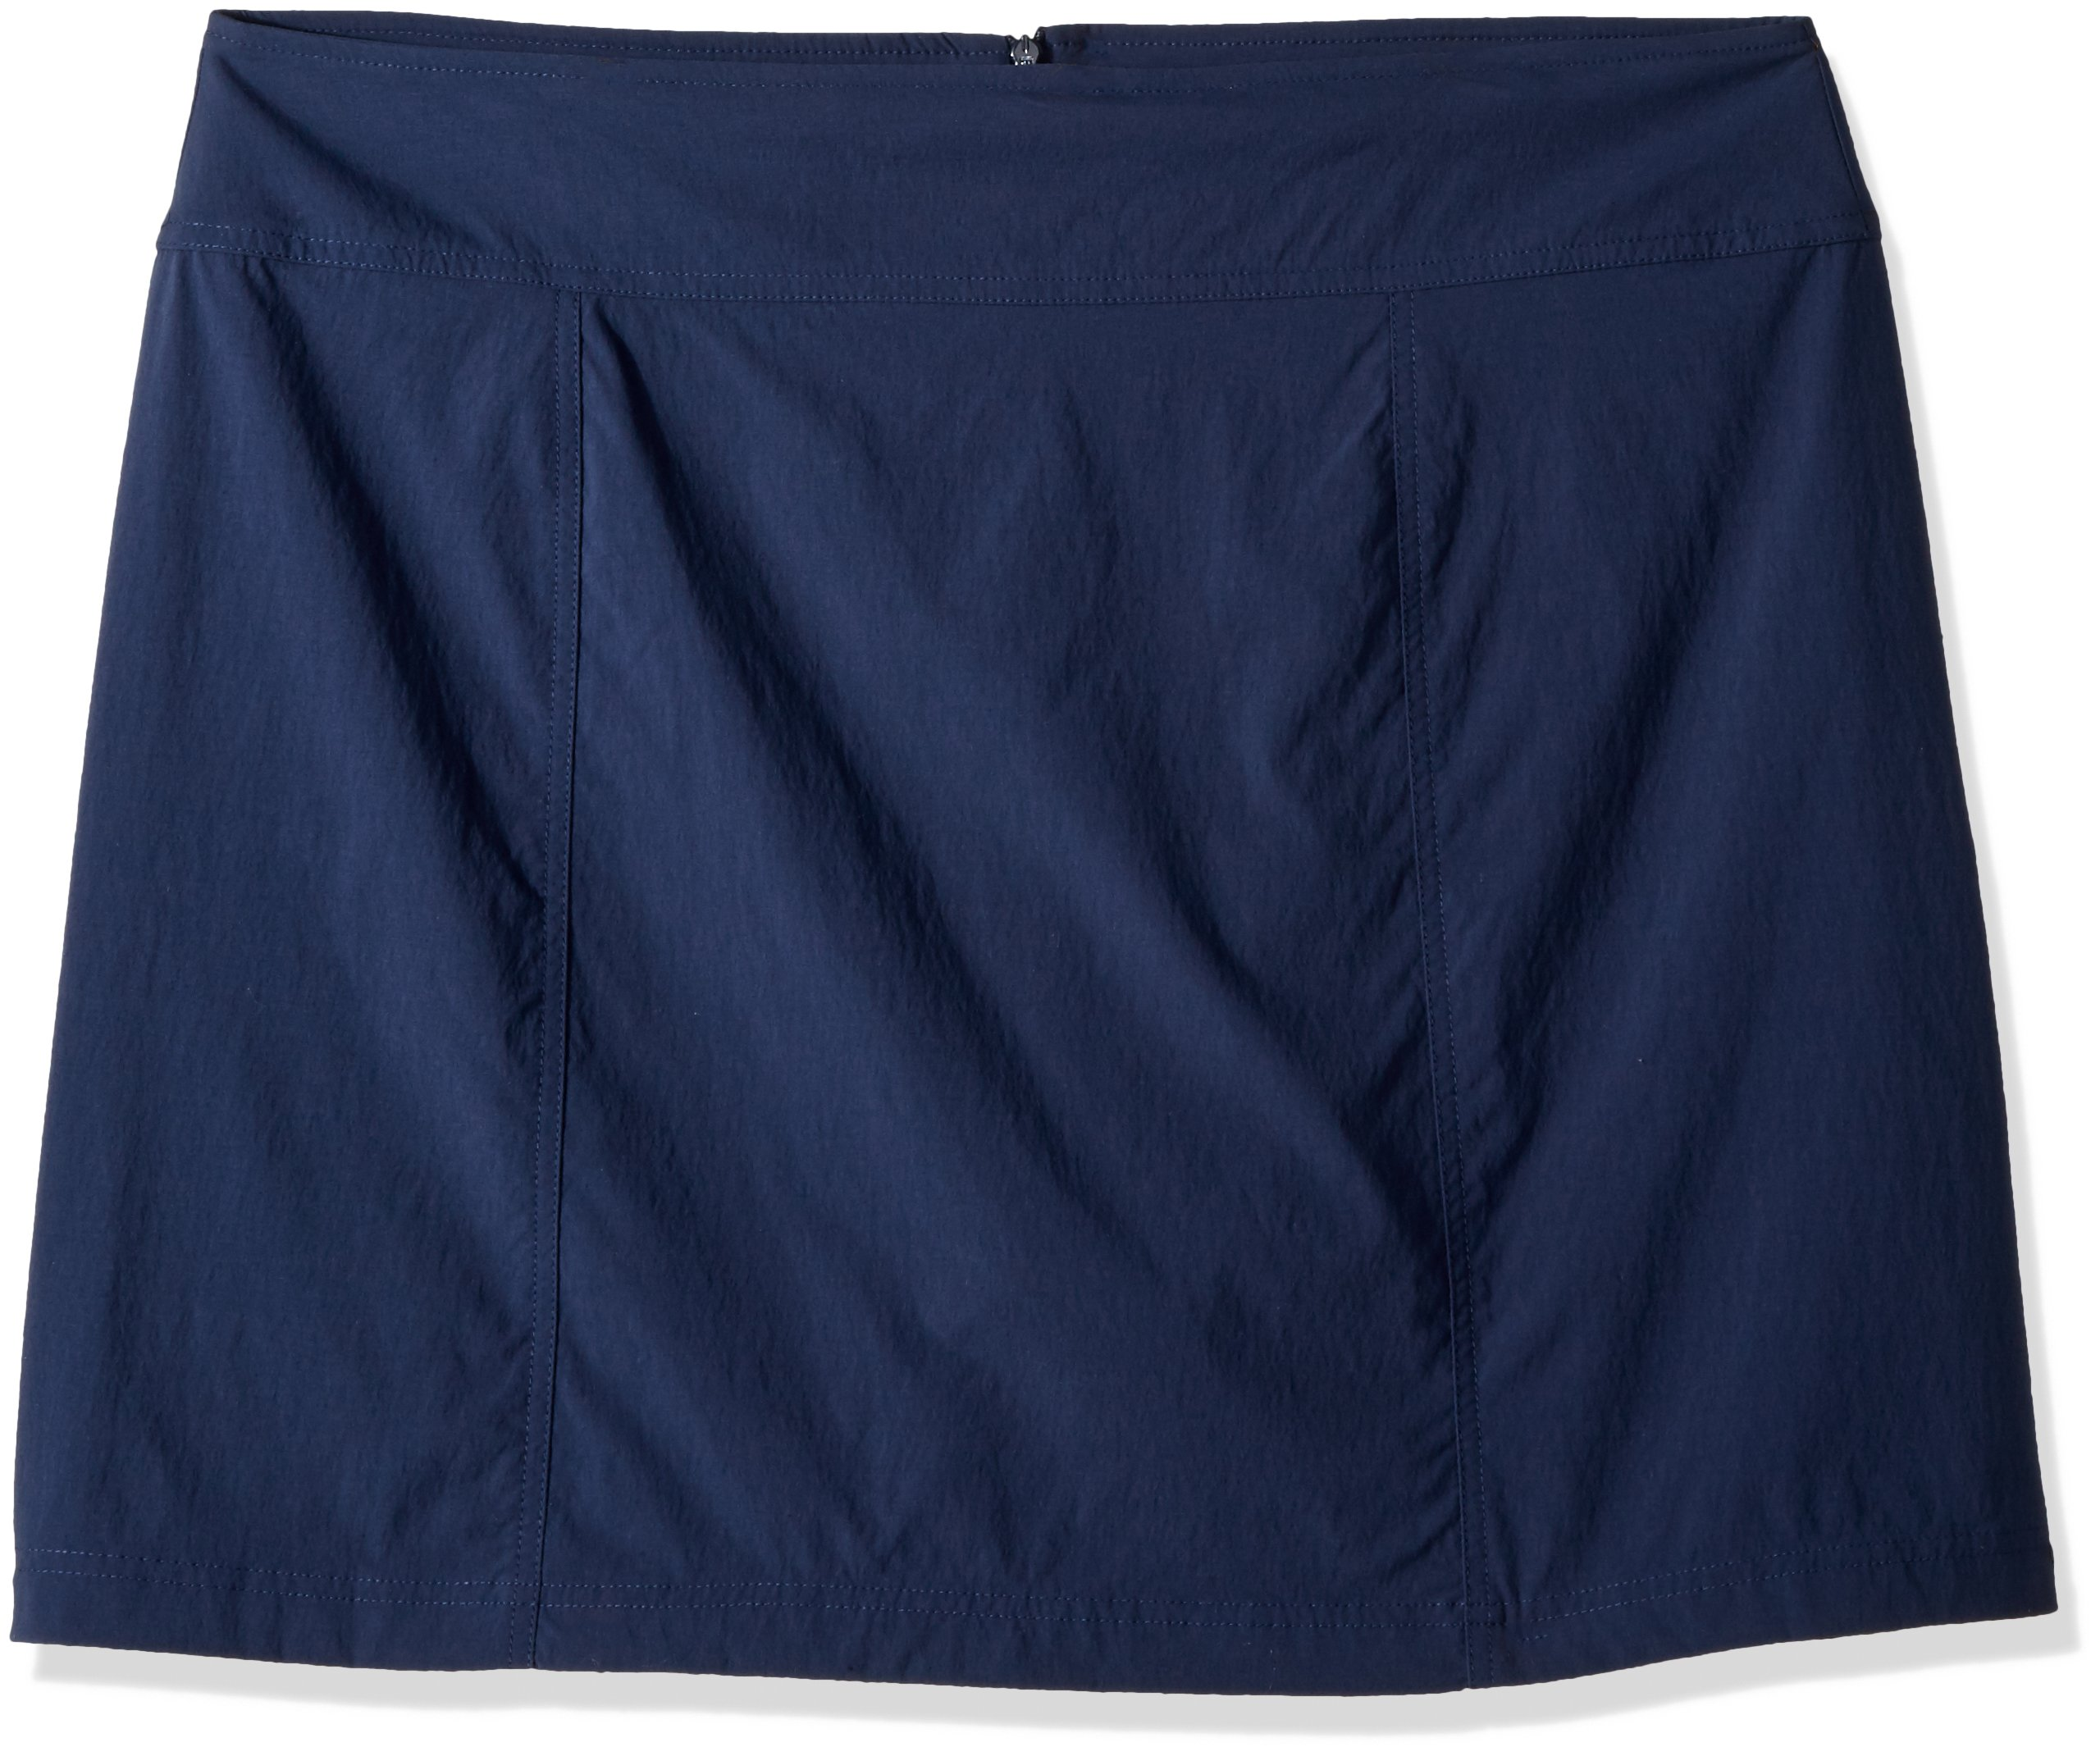 Royal Robbins Women's Discovery Iii Skort, Deep Blue, Size 2 by Royal Robbins